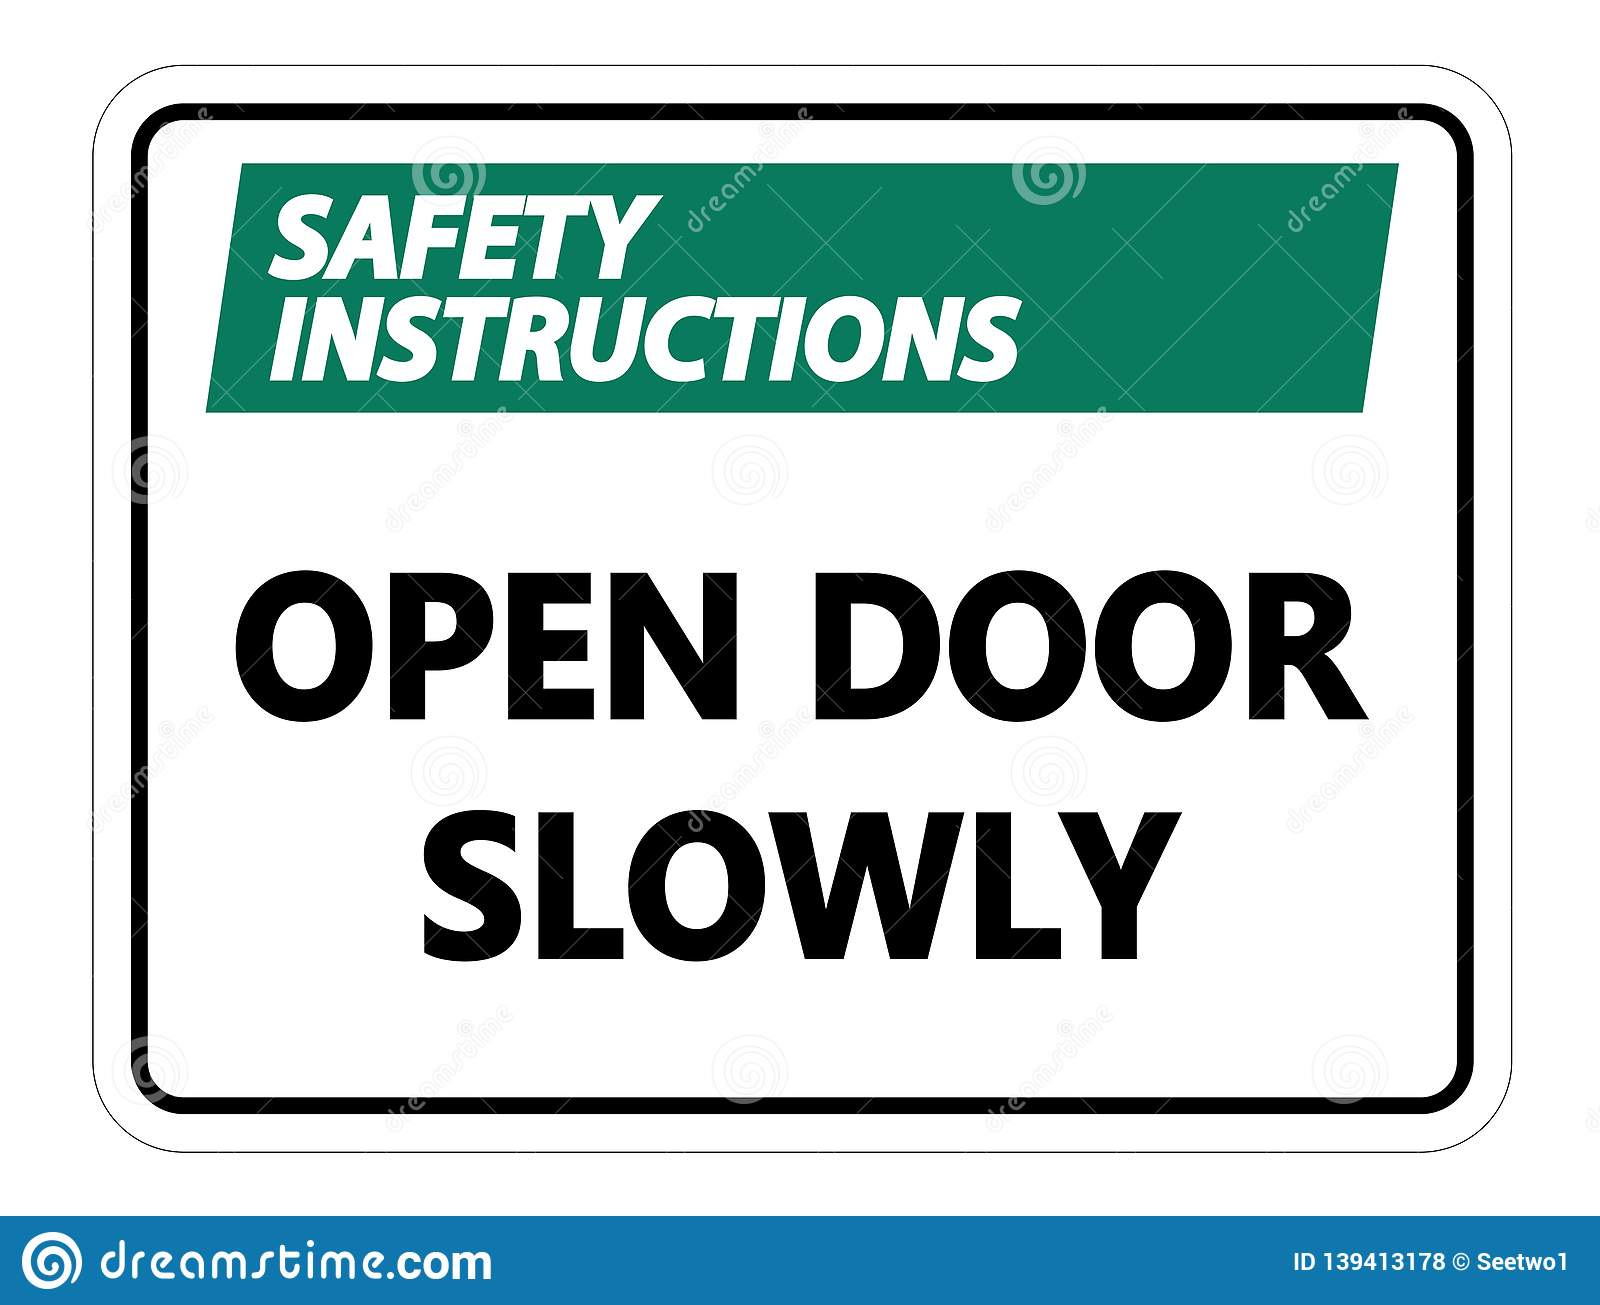 symbol Safety instructions Open Door Slowly Wall Sign on white background